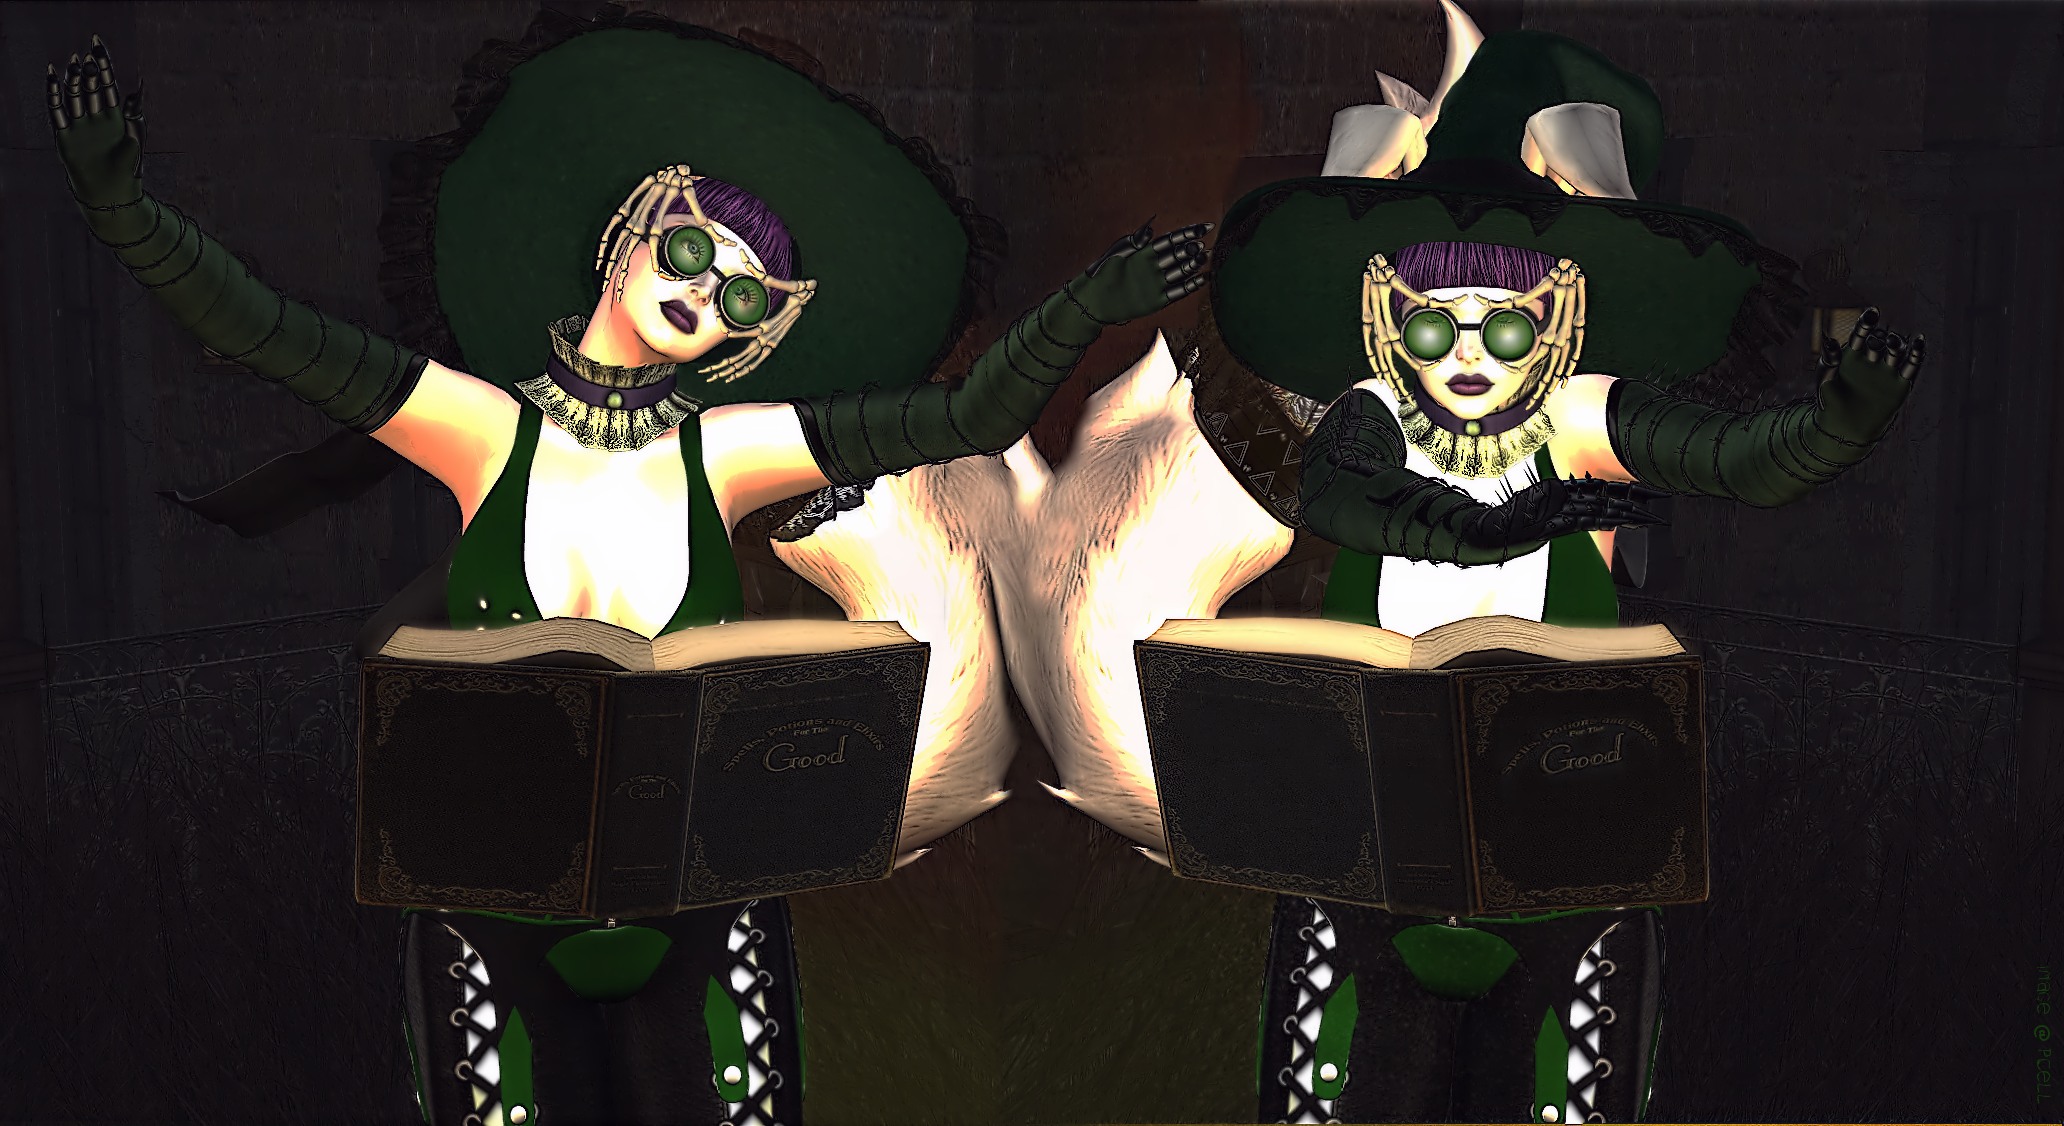 WiccaIronHillsGloves2Witches